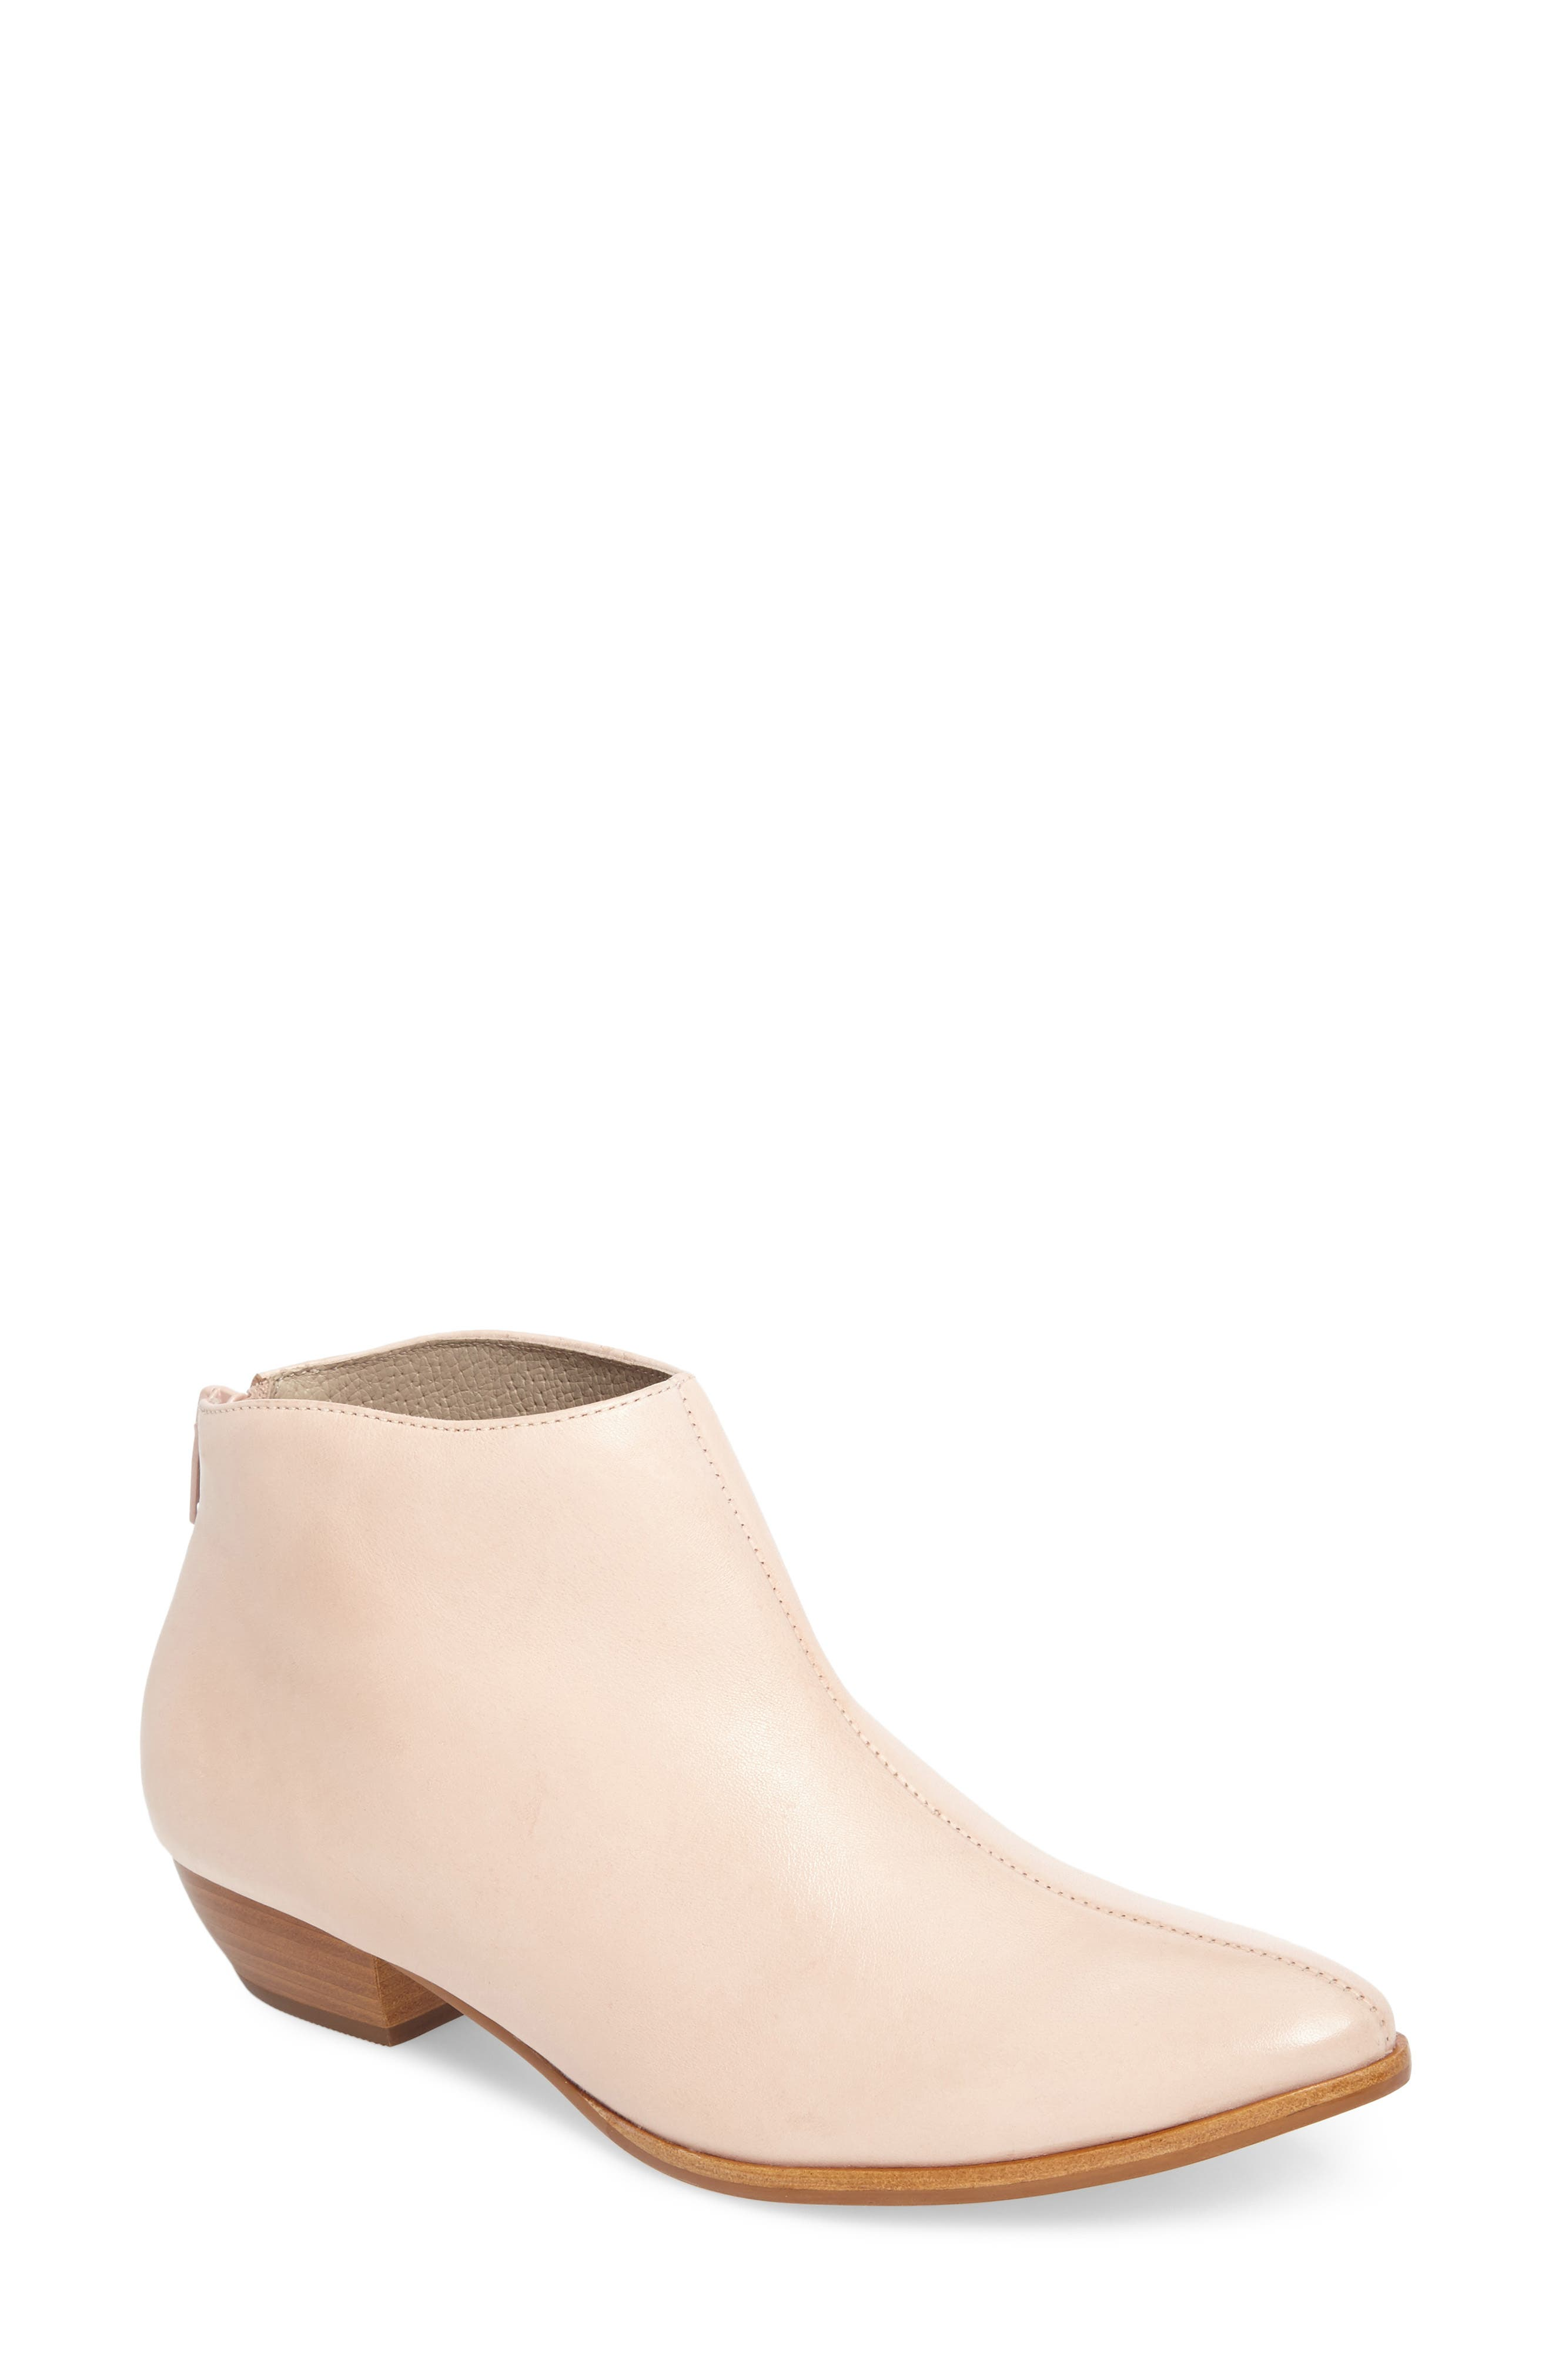 Aida Low Bootie,                         Main,                         color, NUDE LEATHER